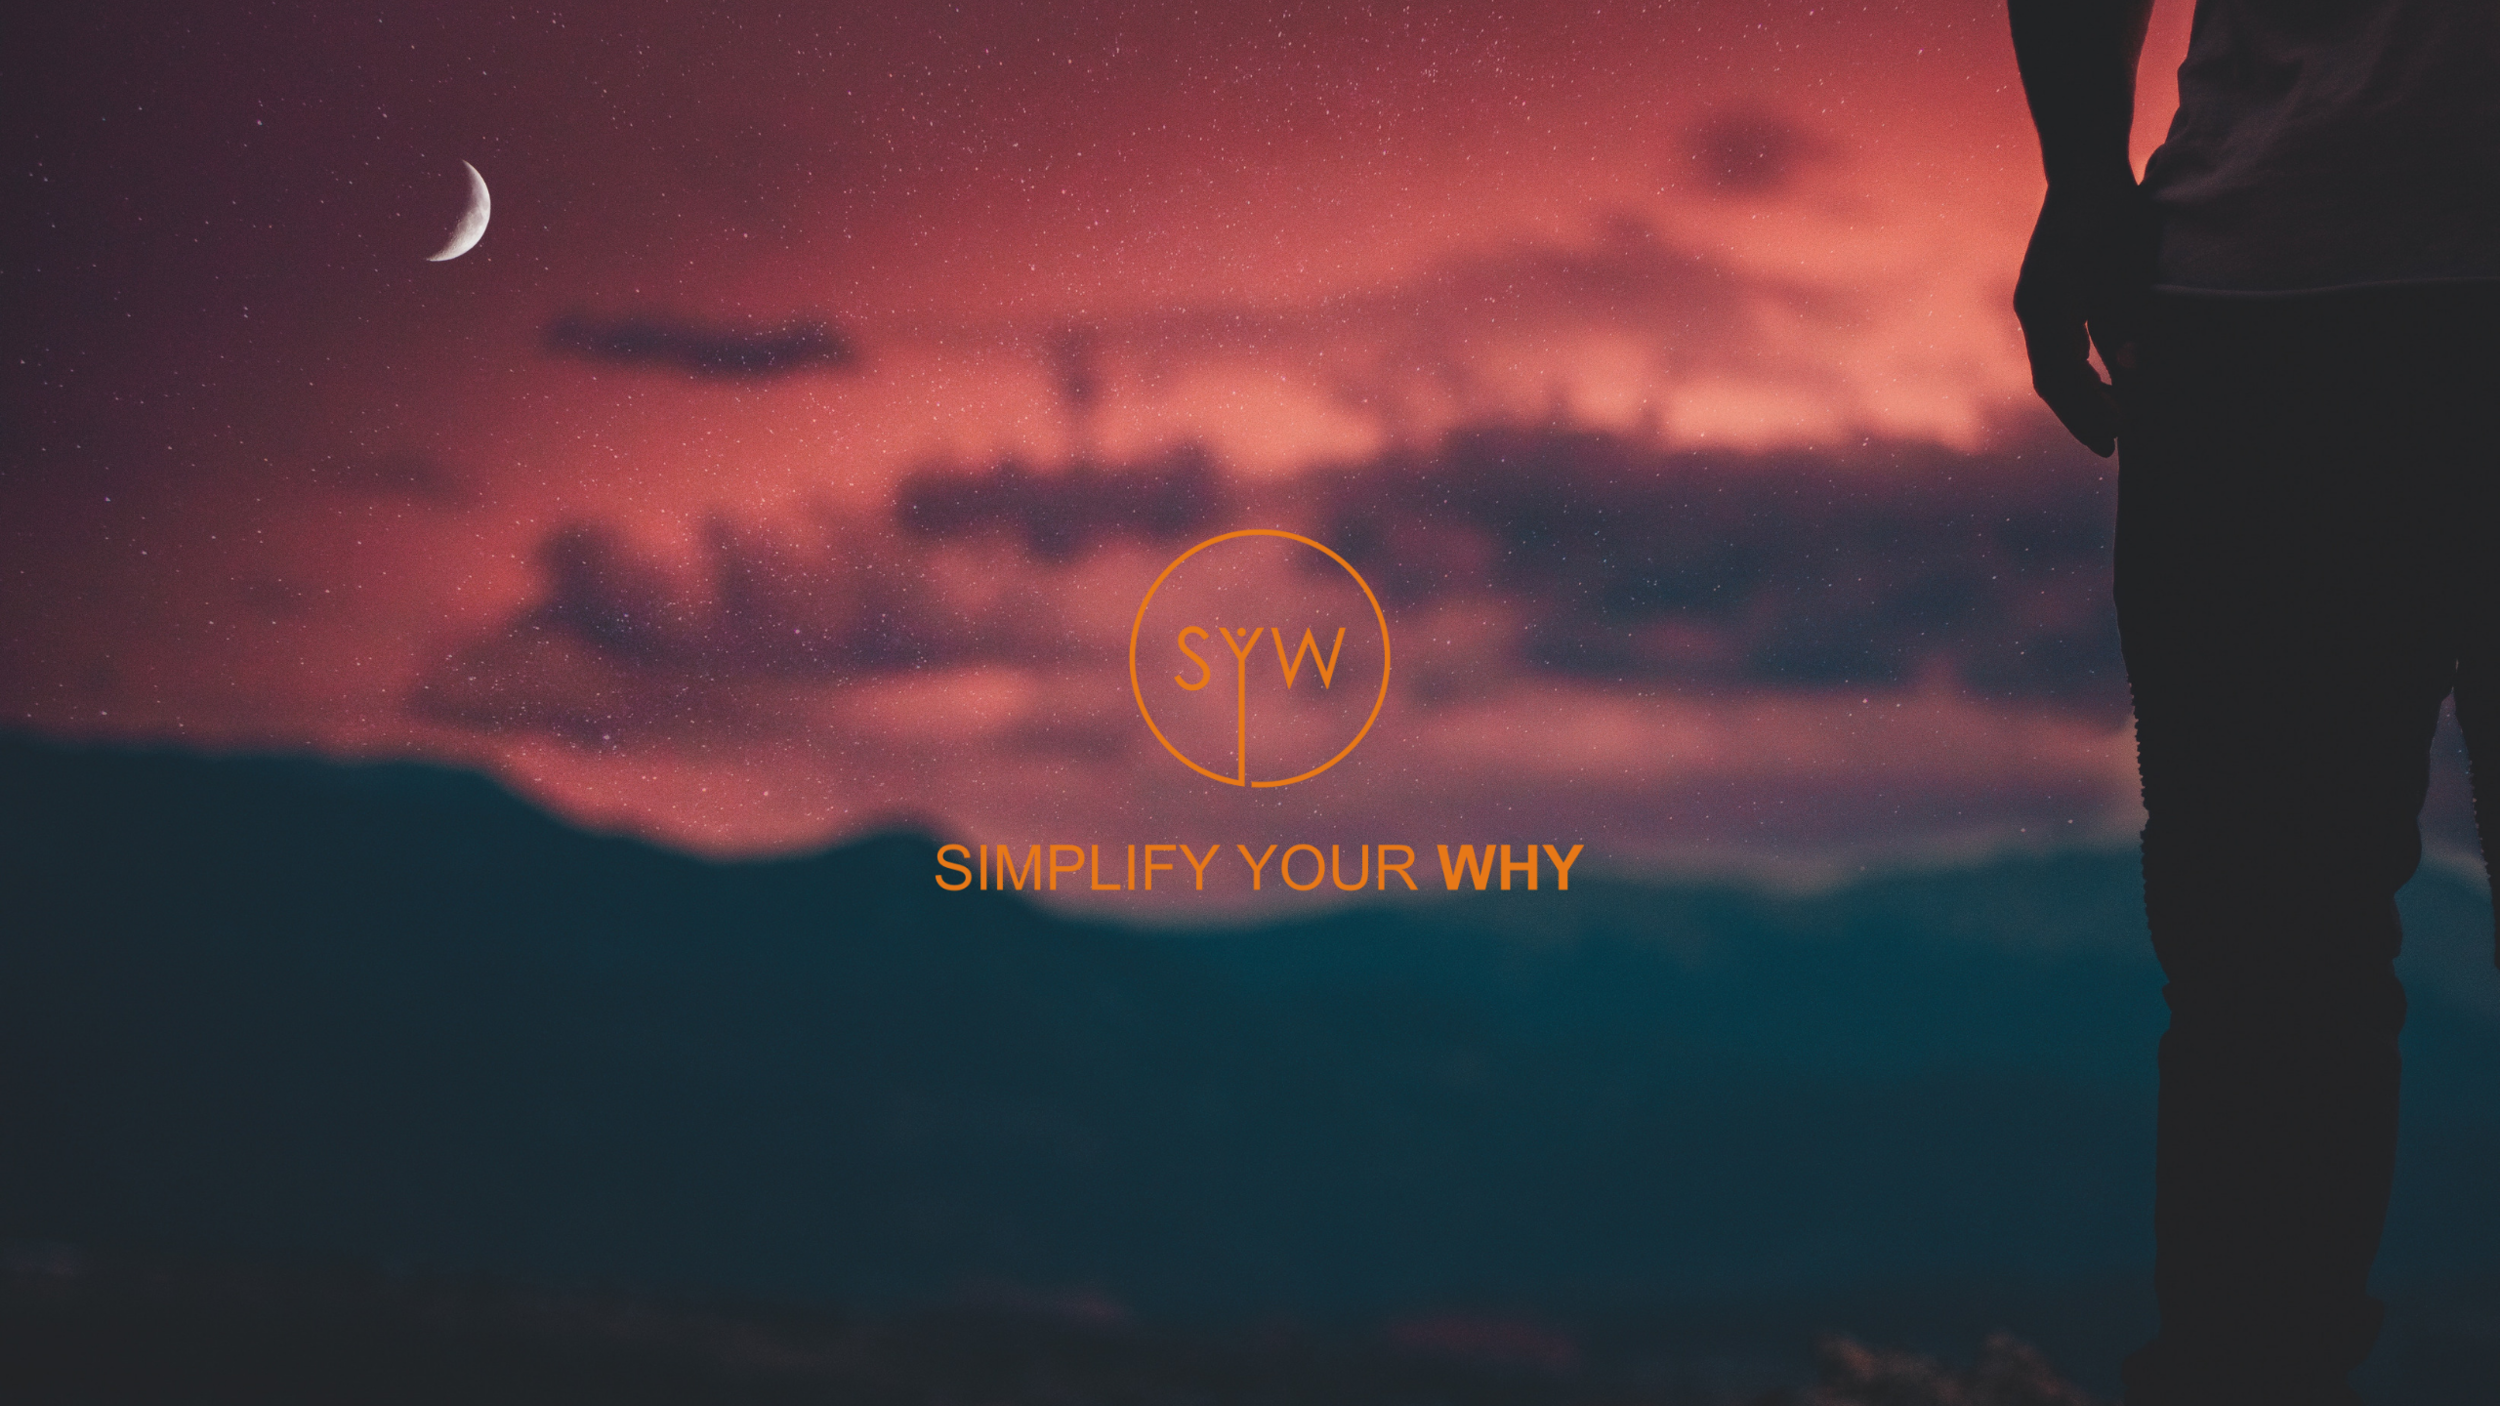 The Simplify Your Why Manifesto For Creative Entrepreneurs